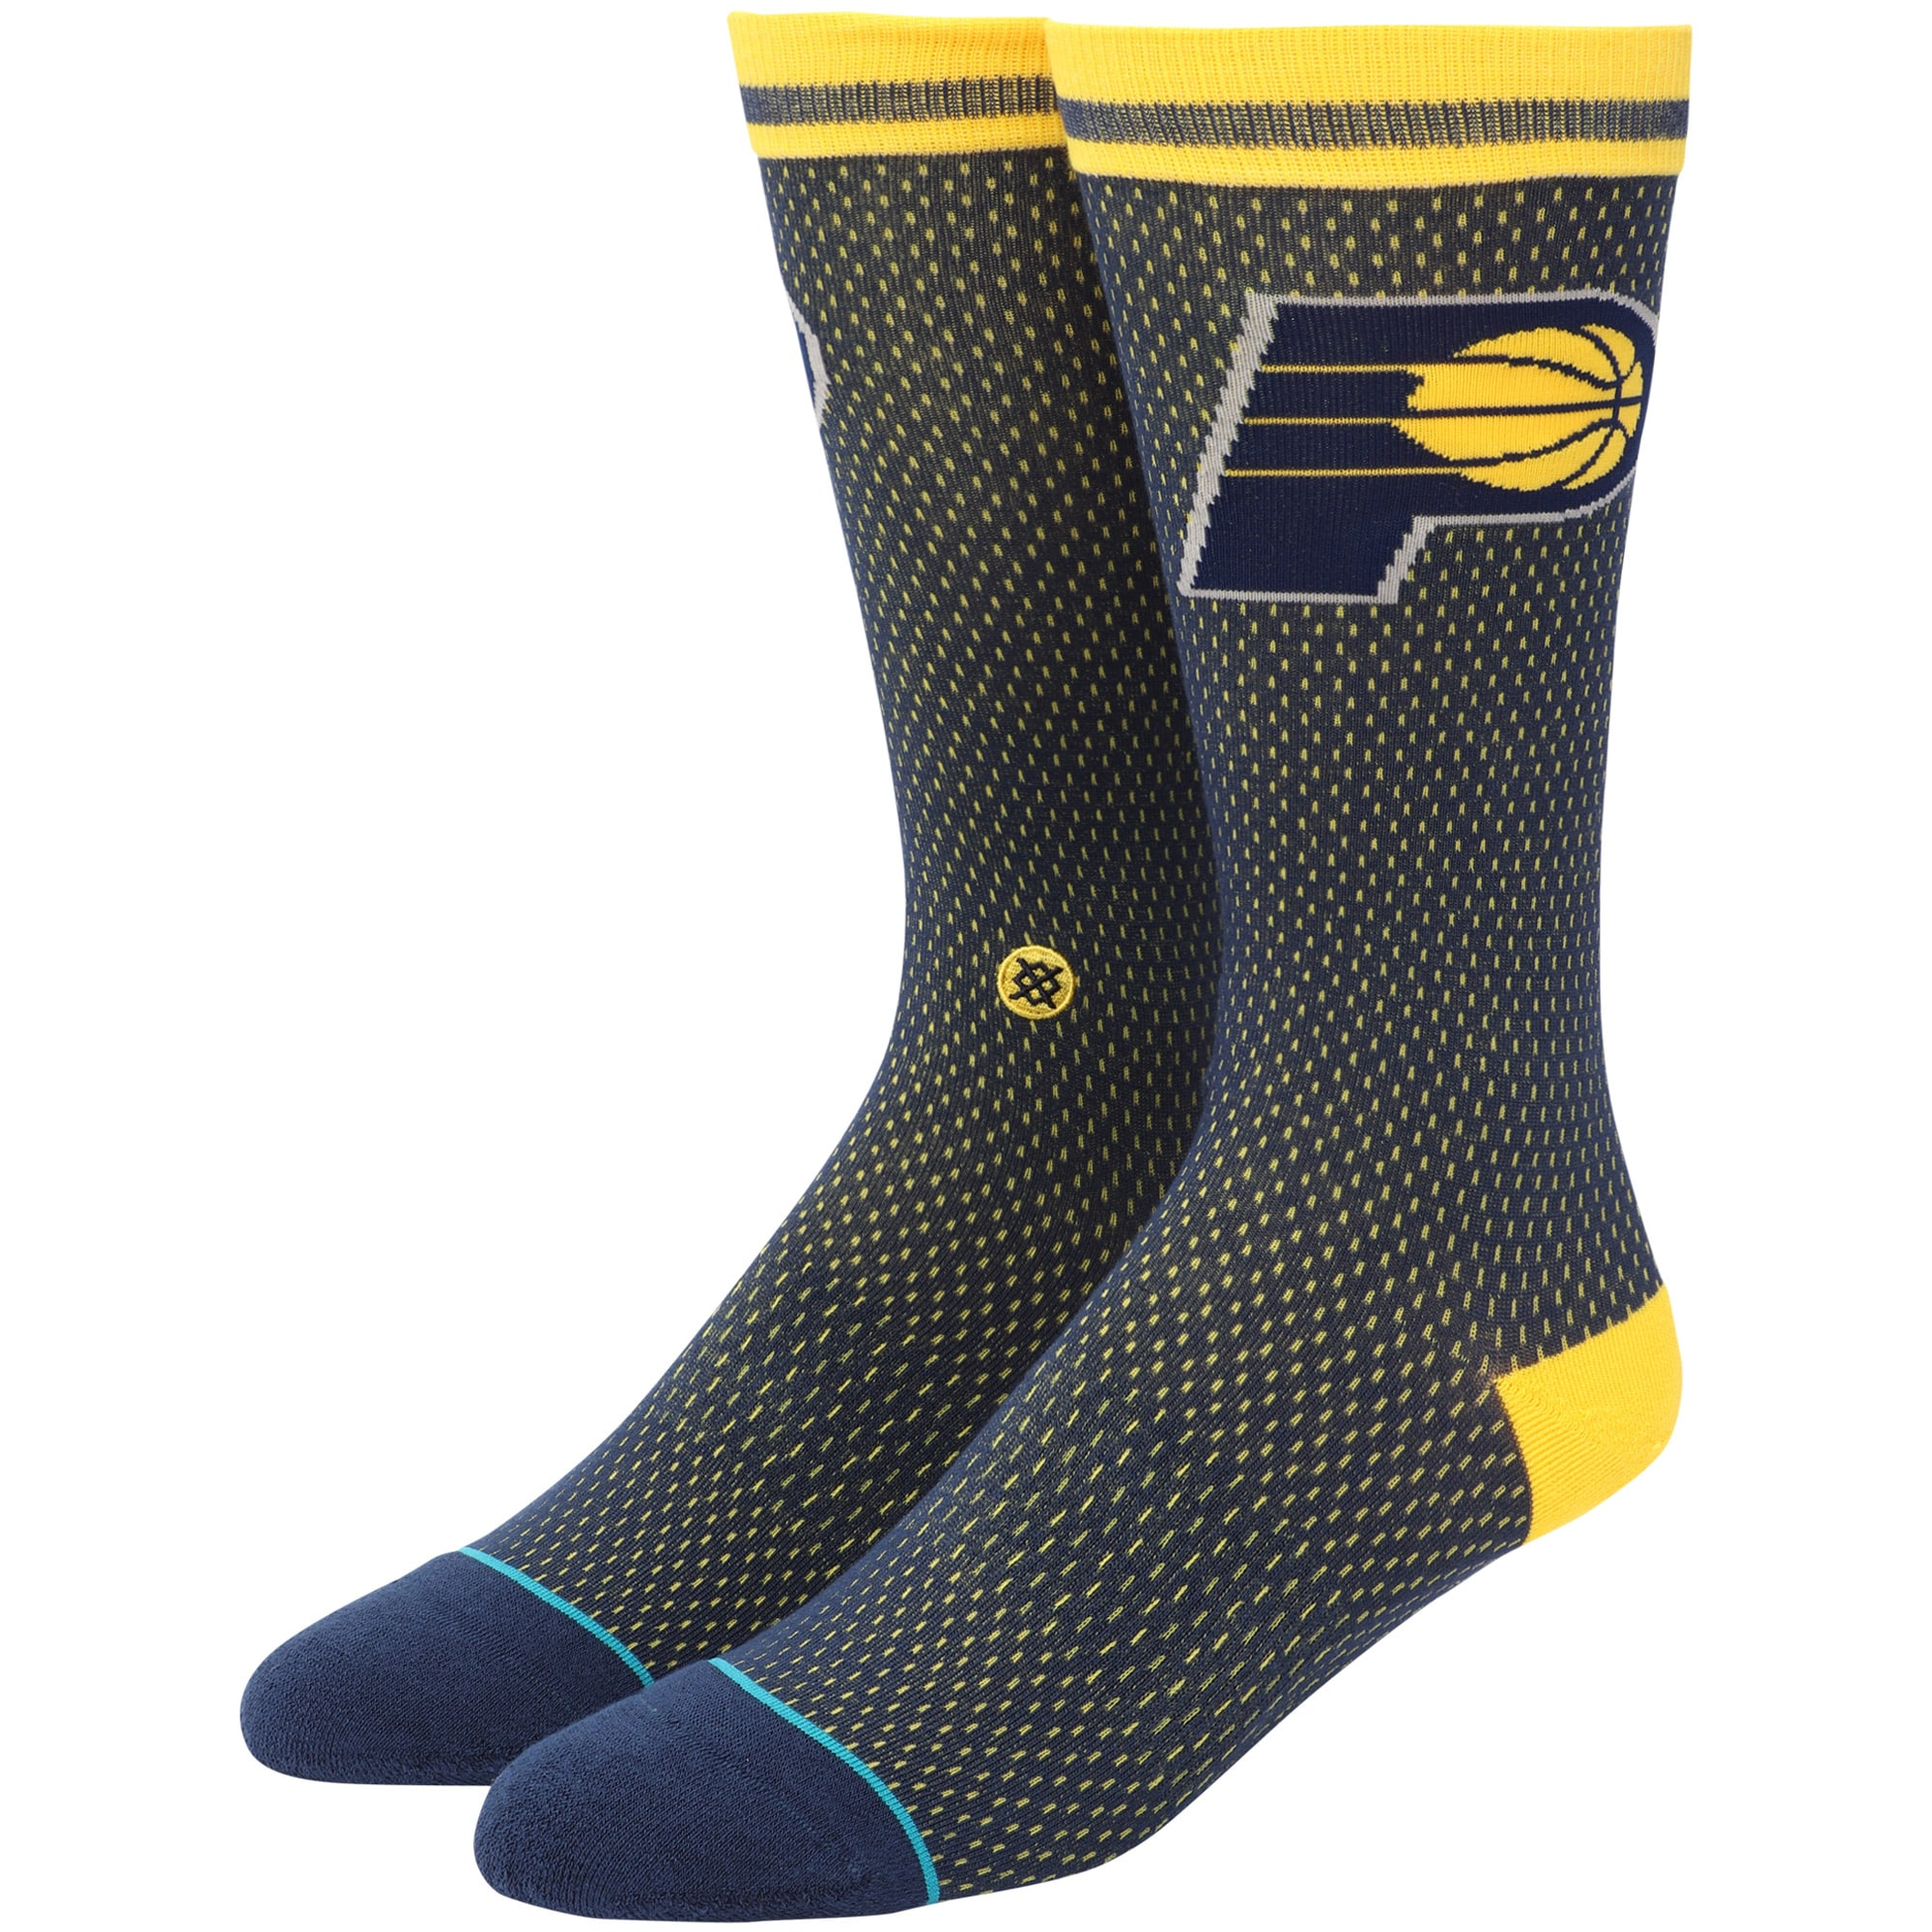 Indiana Pacers Stance Jersey Socks